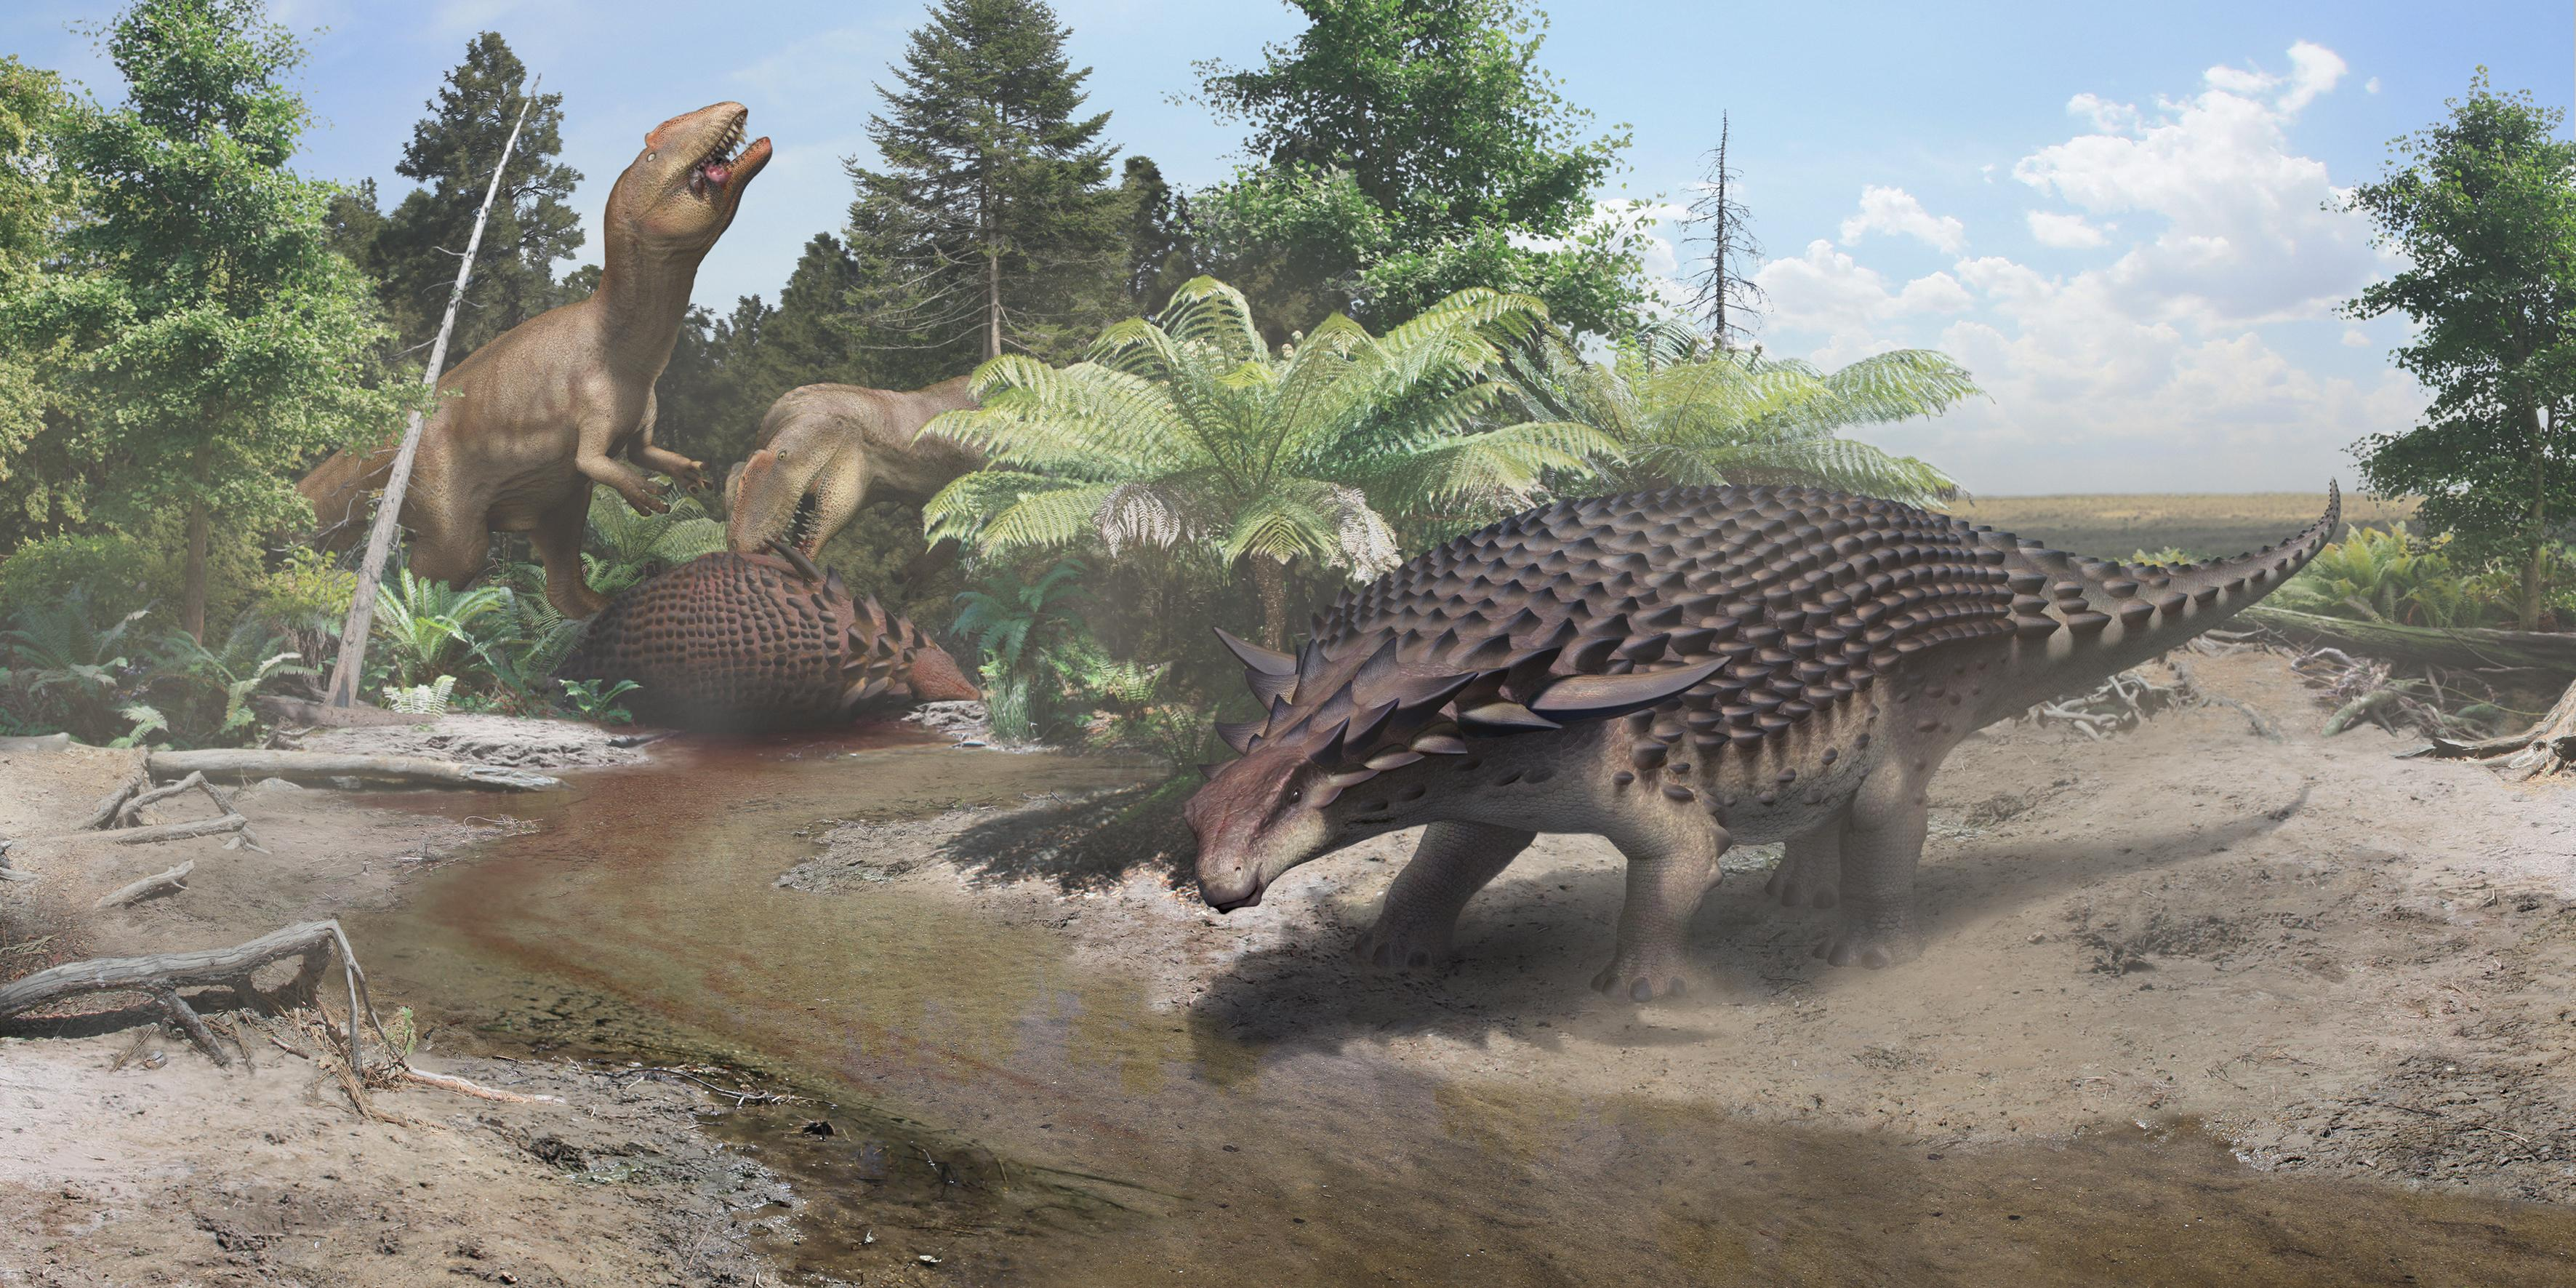 Big, armoured dinosaur might have used camouflage to avoid predators